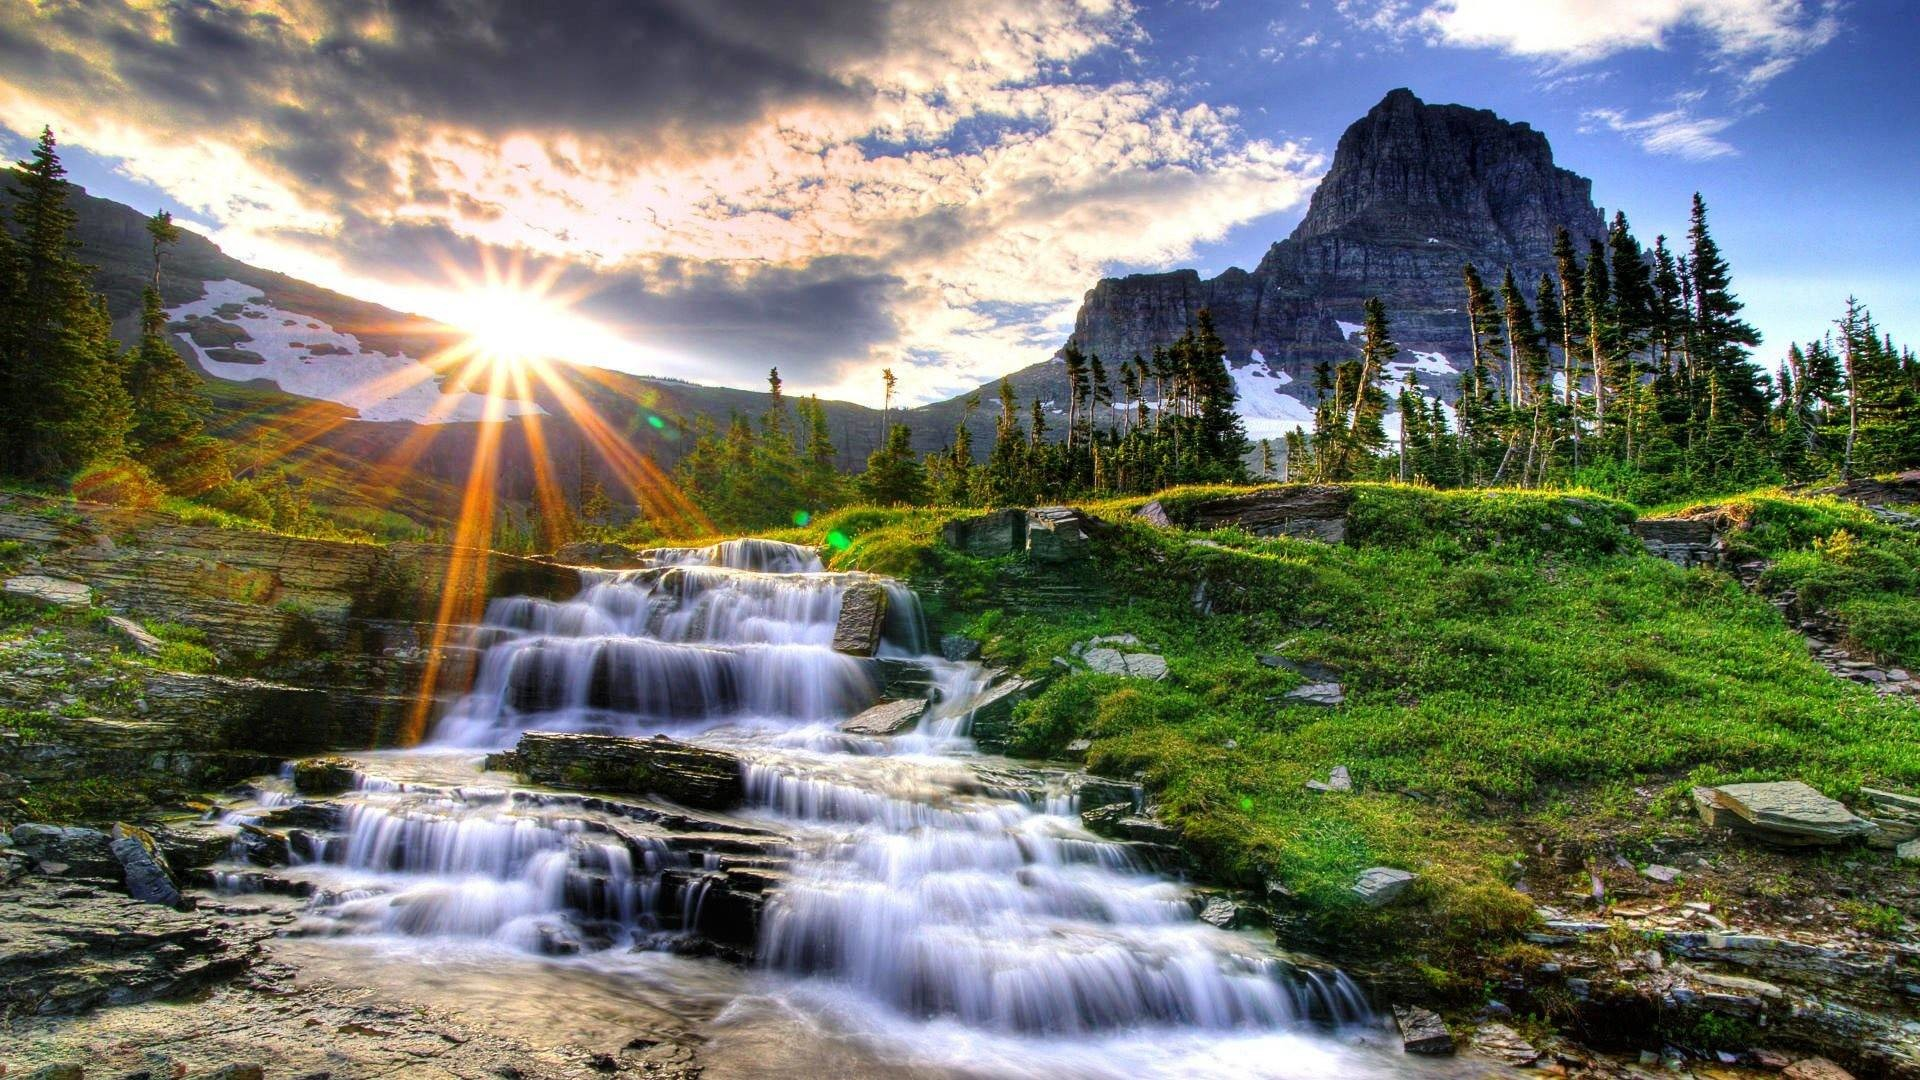 nature wallpapers and screensavers 67 images